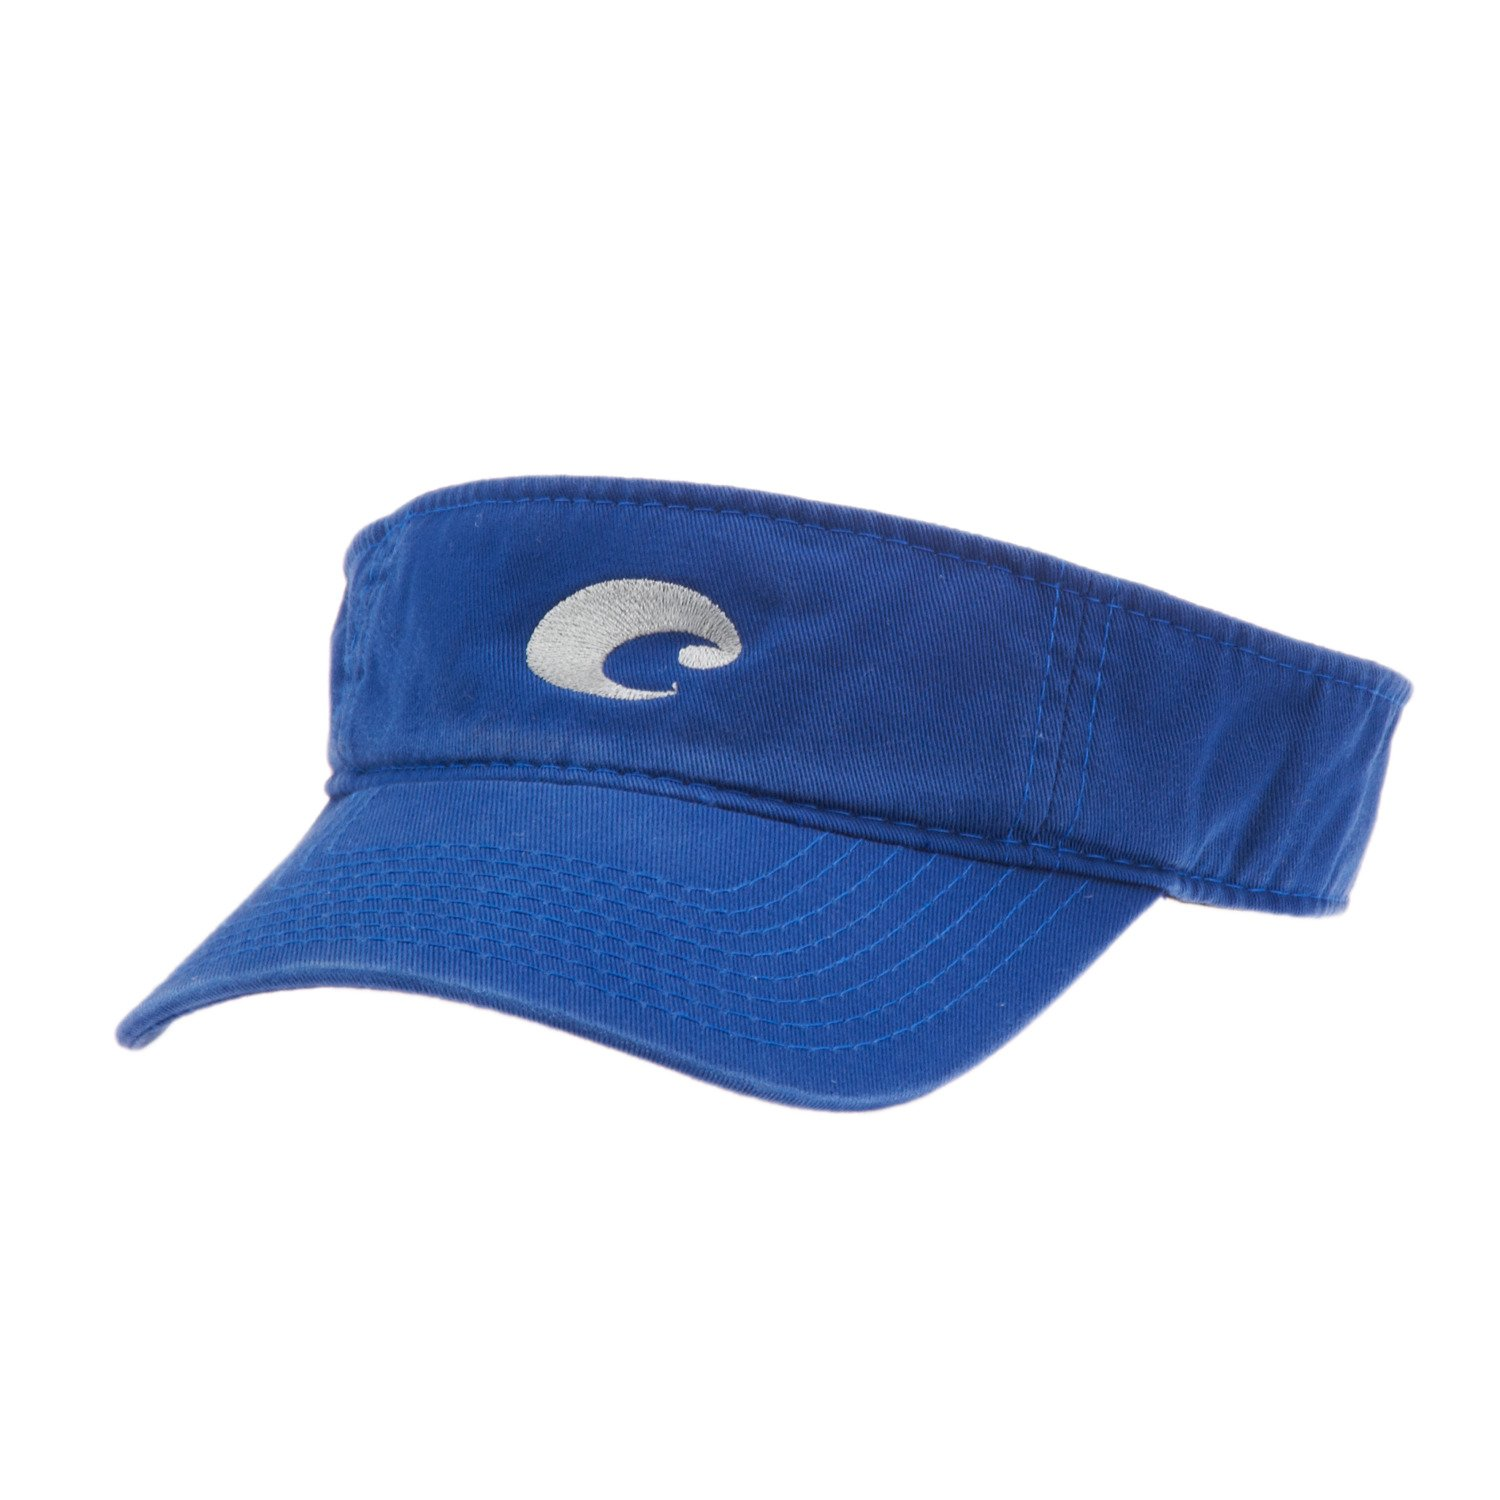 Display product reviews for Costa Del Mar Visor Hat 76564246f5e2